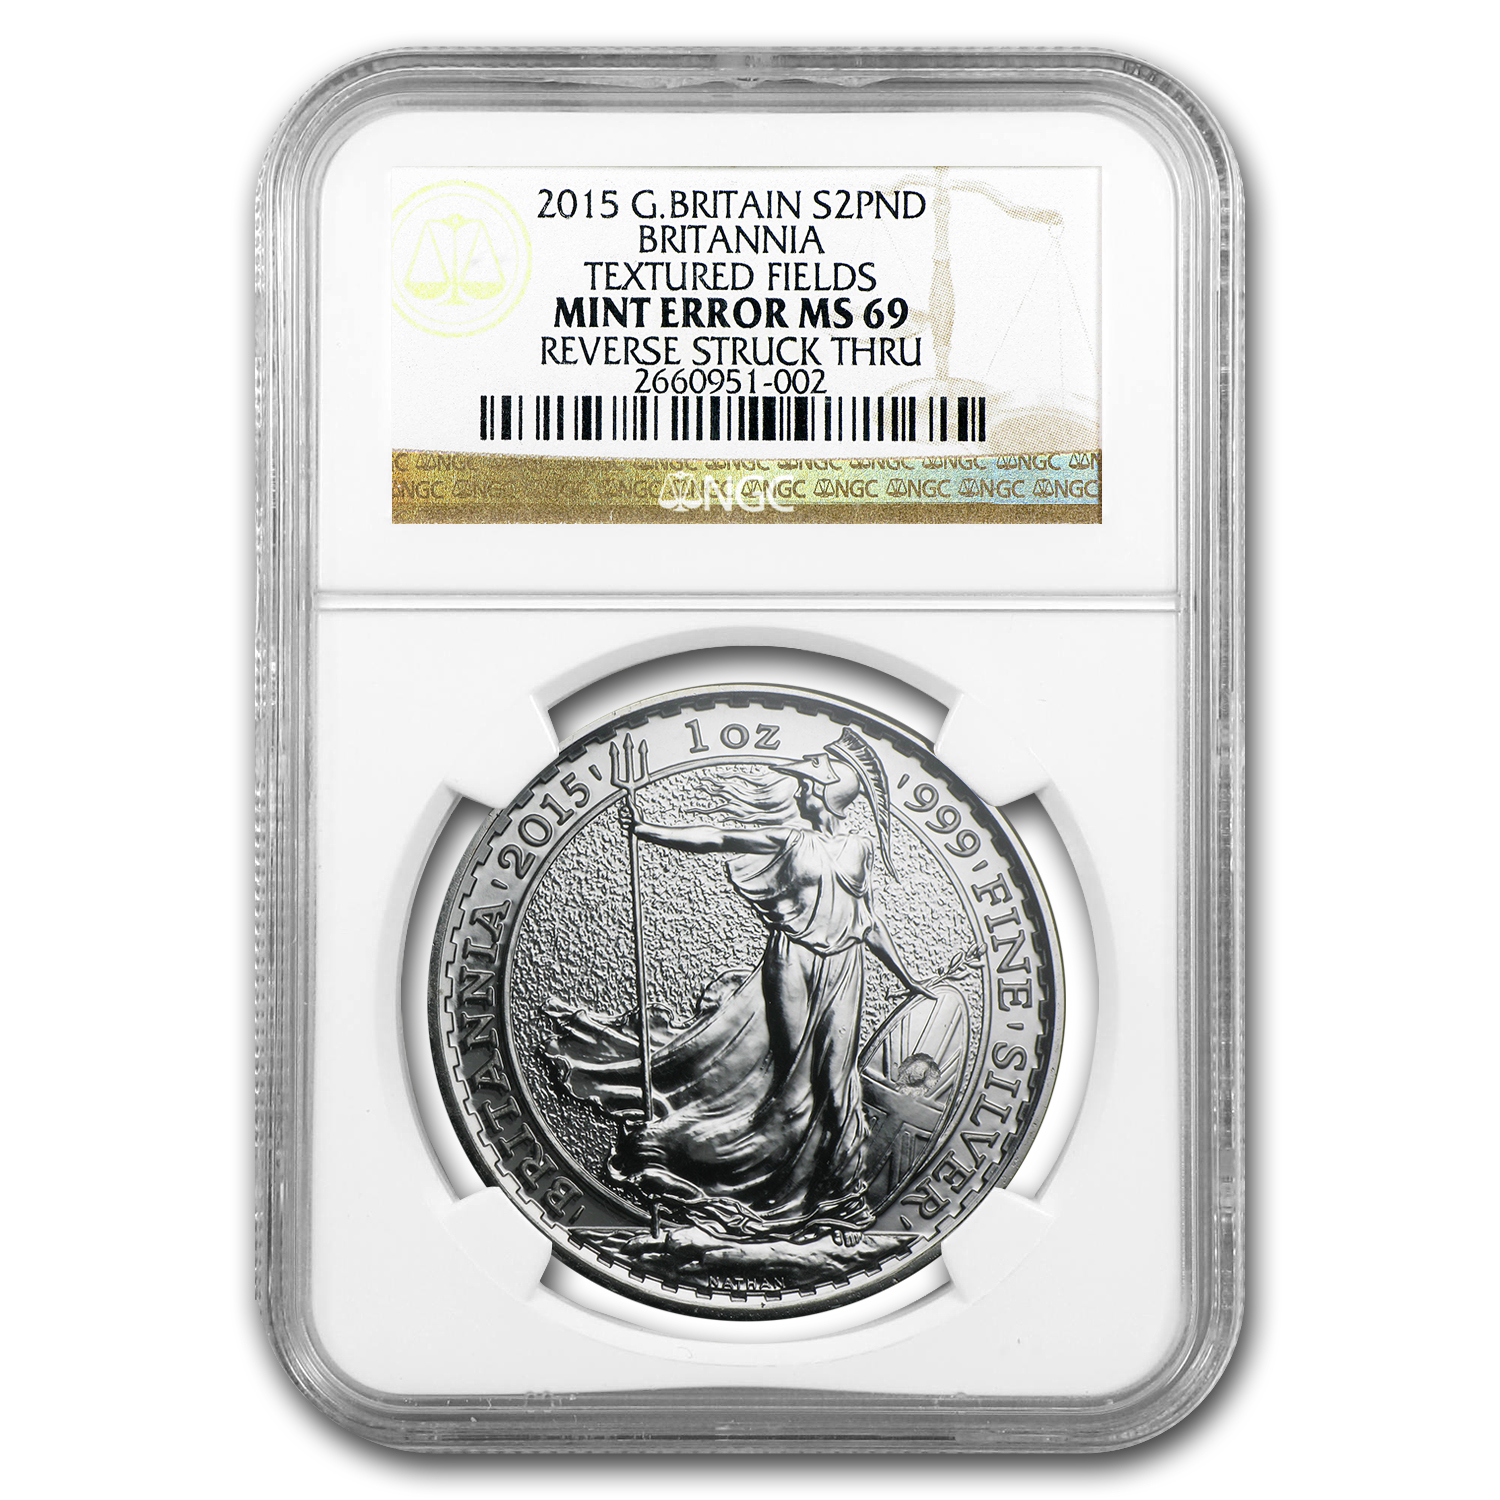 2015 1 oz Silver Britannia Rev Struck Thru MS-69 NGC (Mint Error)